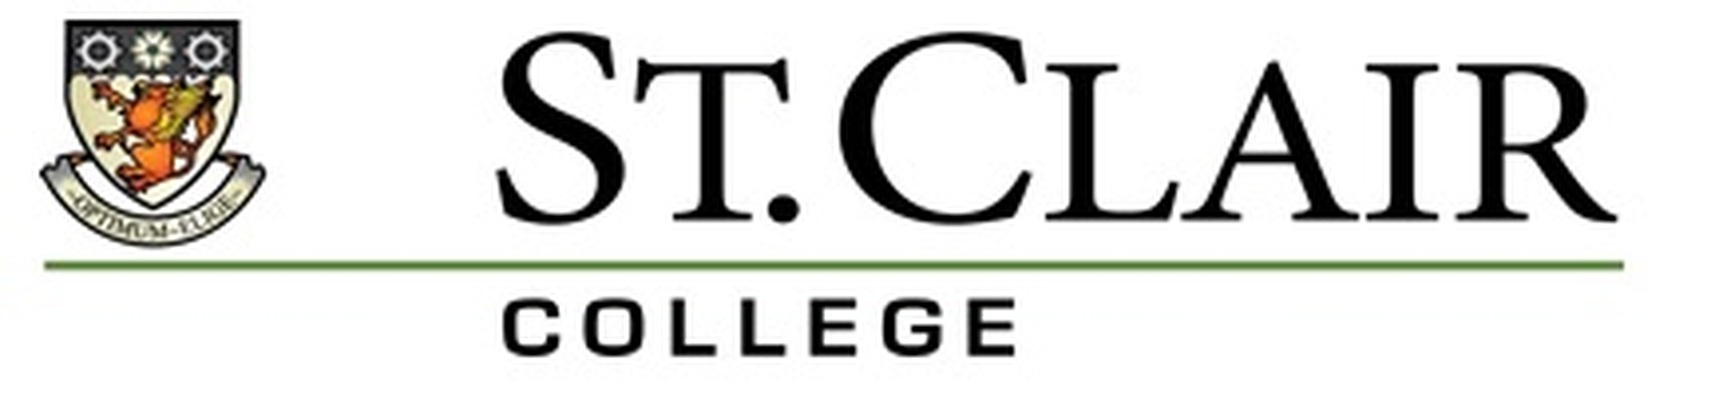 St. Clair College of Applied Arts & Technology